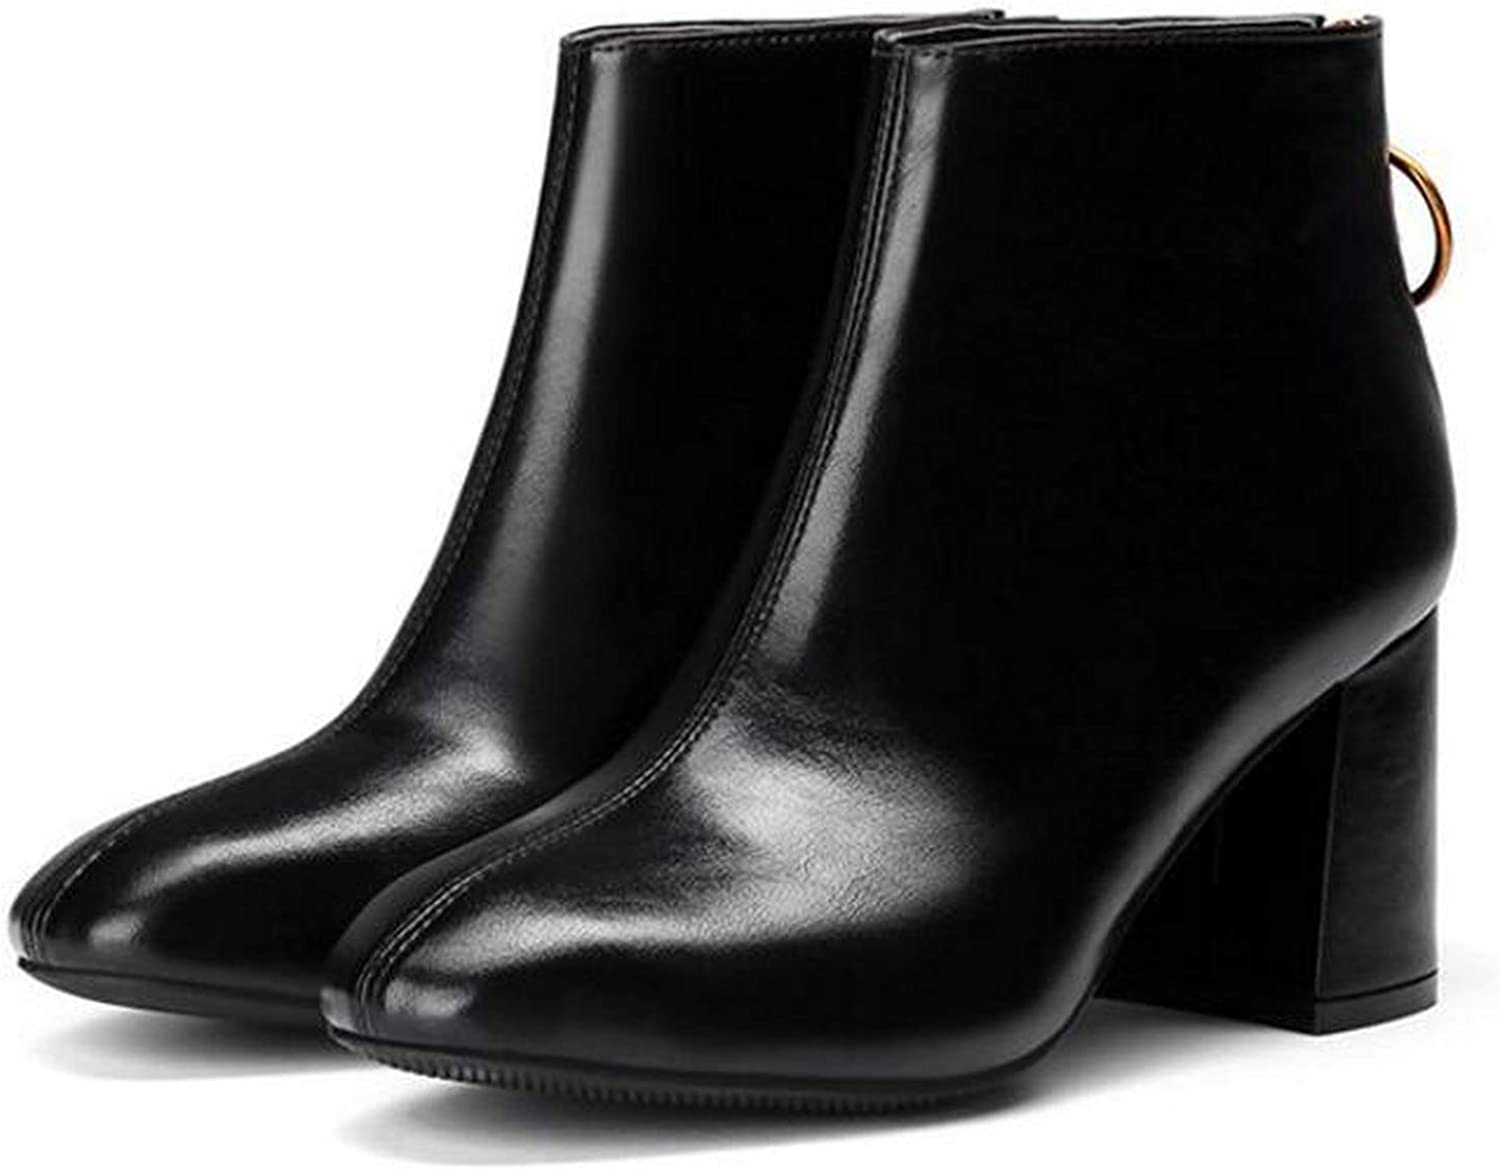 Meet- fashion Square Toe Women Boots Ankle Boots Metal Ring Zipper Thick high Heel Boots Ladies Party Ankle Boots